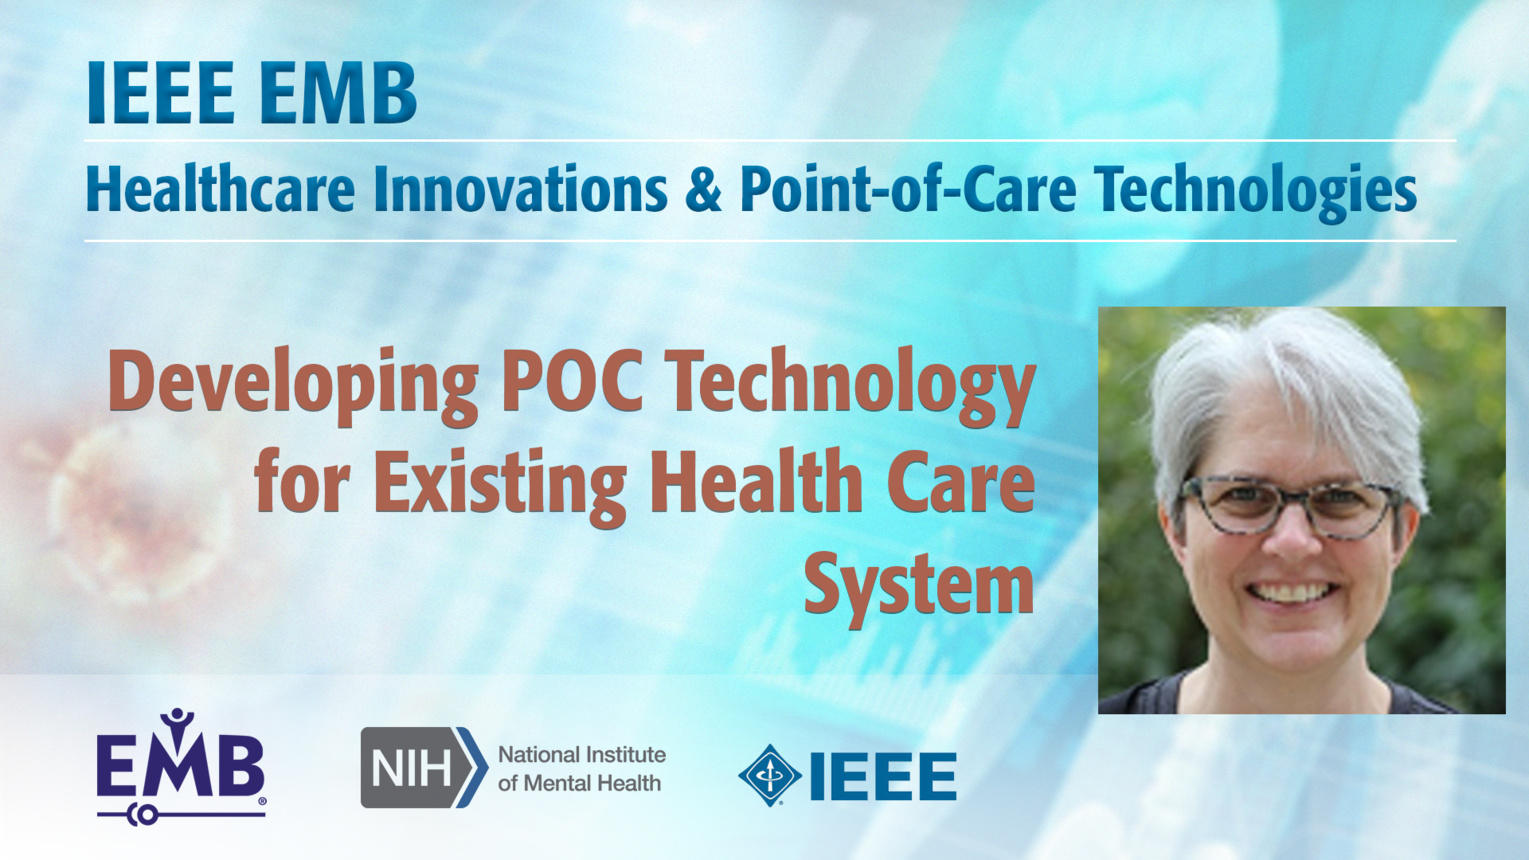 Developing POC Technology for Existing Health Care System - Sally McFall - IEEE EMBS at NIH, 2019